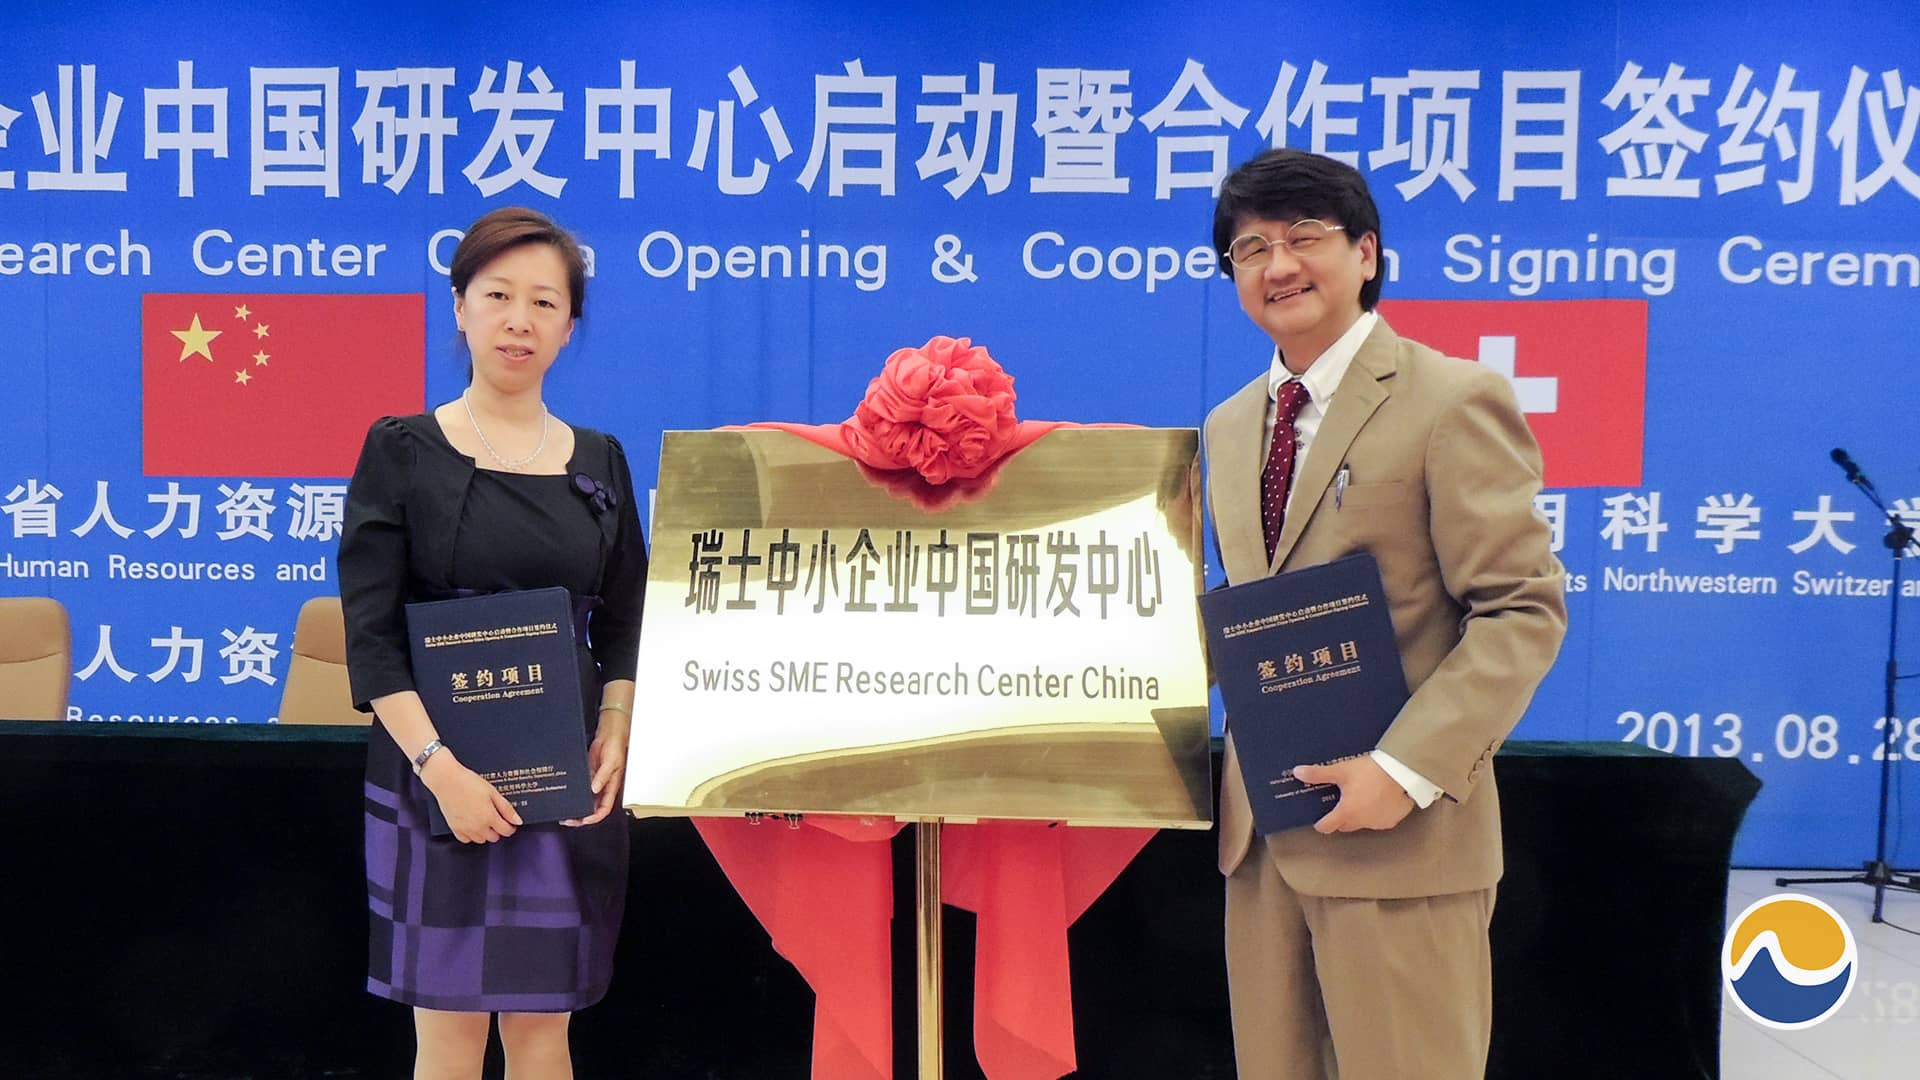 THROWBACK: Prof. Dato' Sri Dr. Mike Chan Joins Swiss SME Delegation Team To Bring Anti-Aging Development To Heilongjiang Province, China!